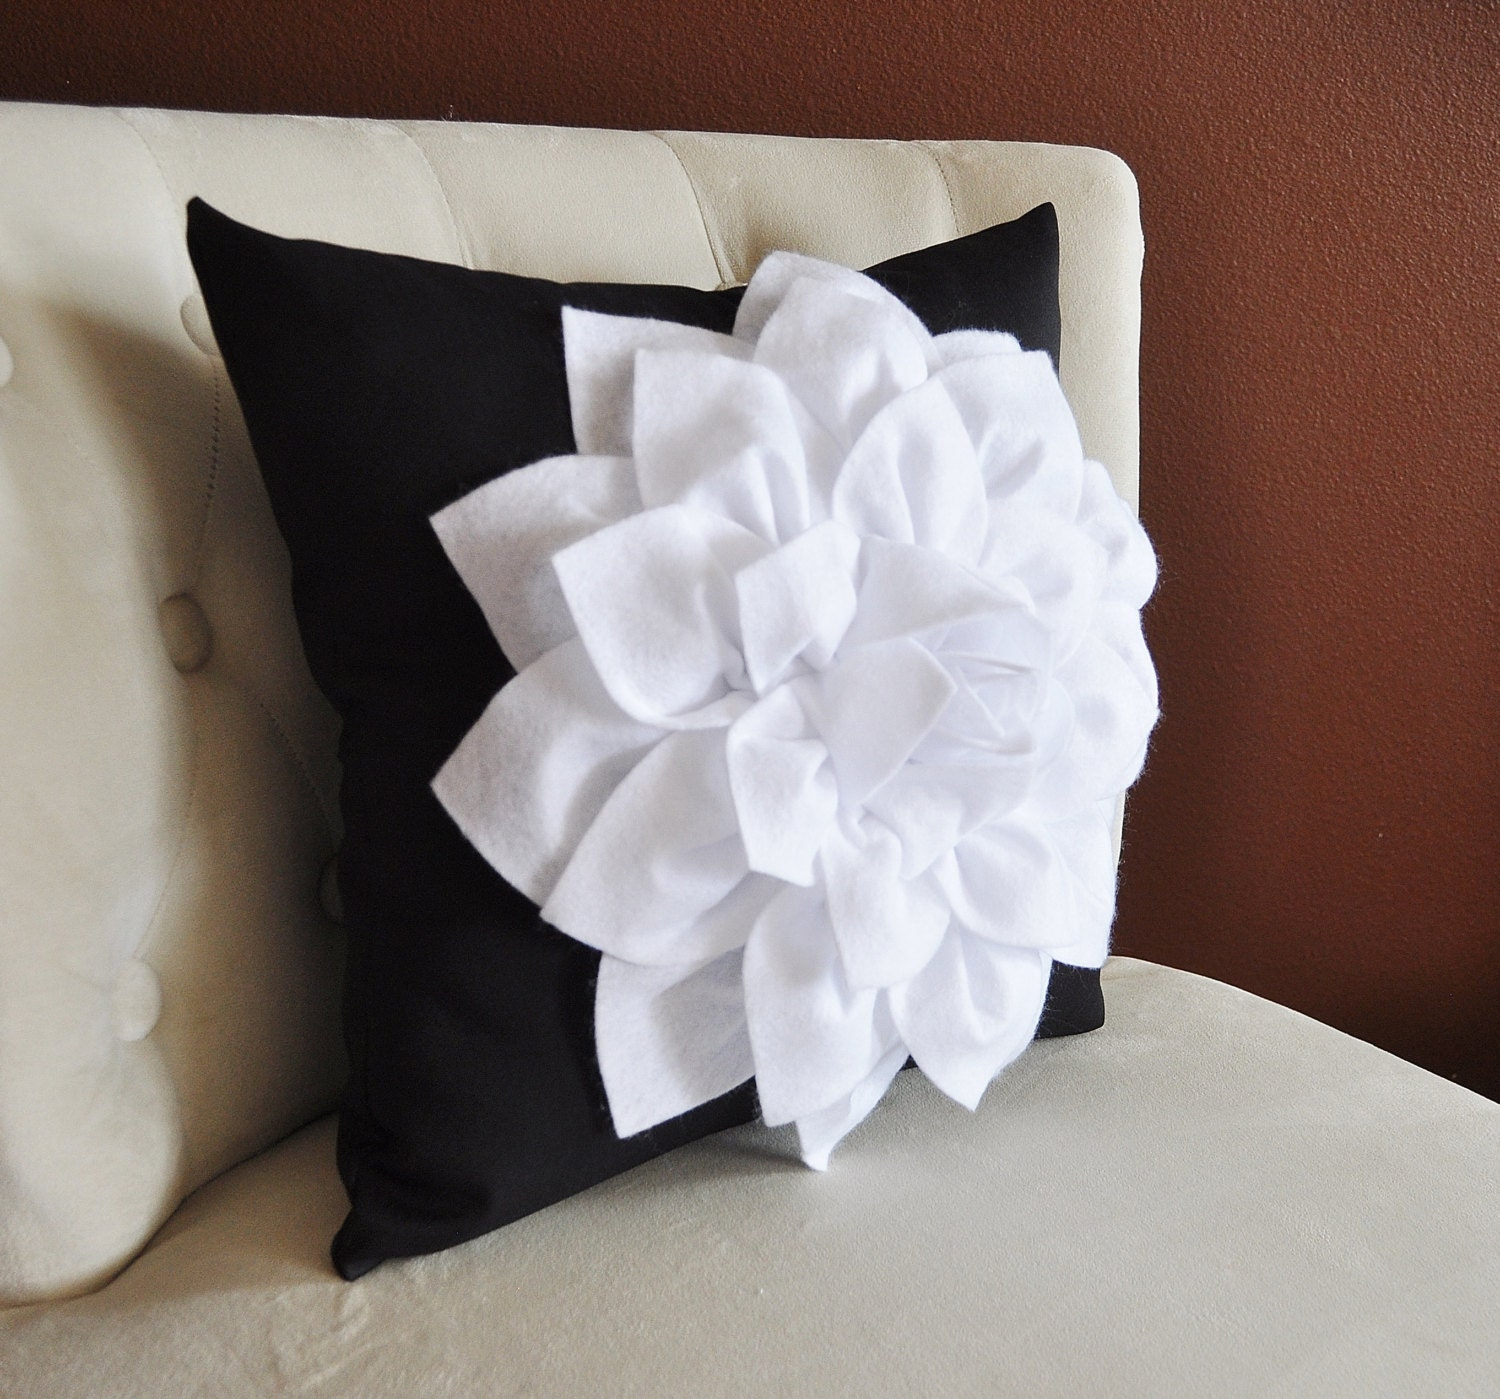 Large Flower Throw Pillow : Decorative Throw Pillow White Dahlia Flower on Black by bedbuggs